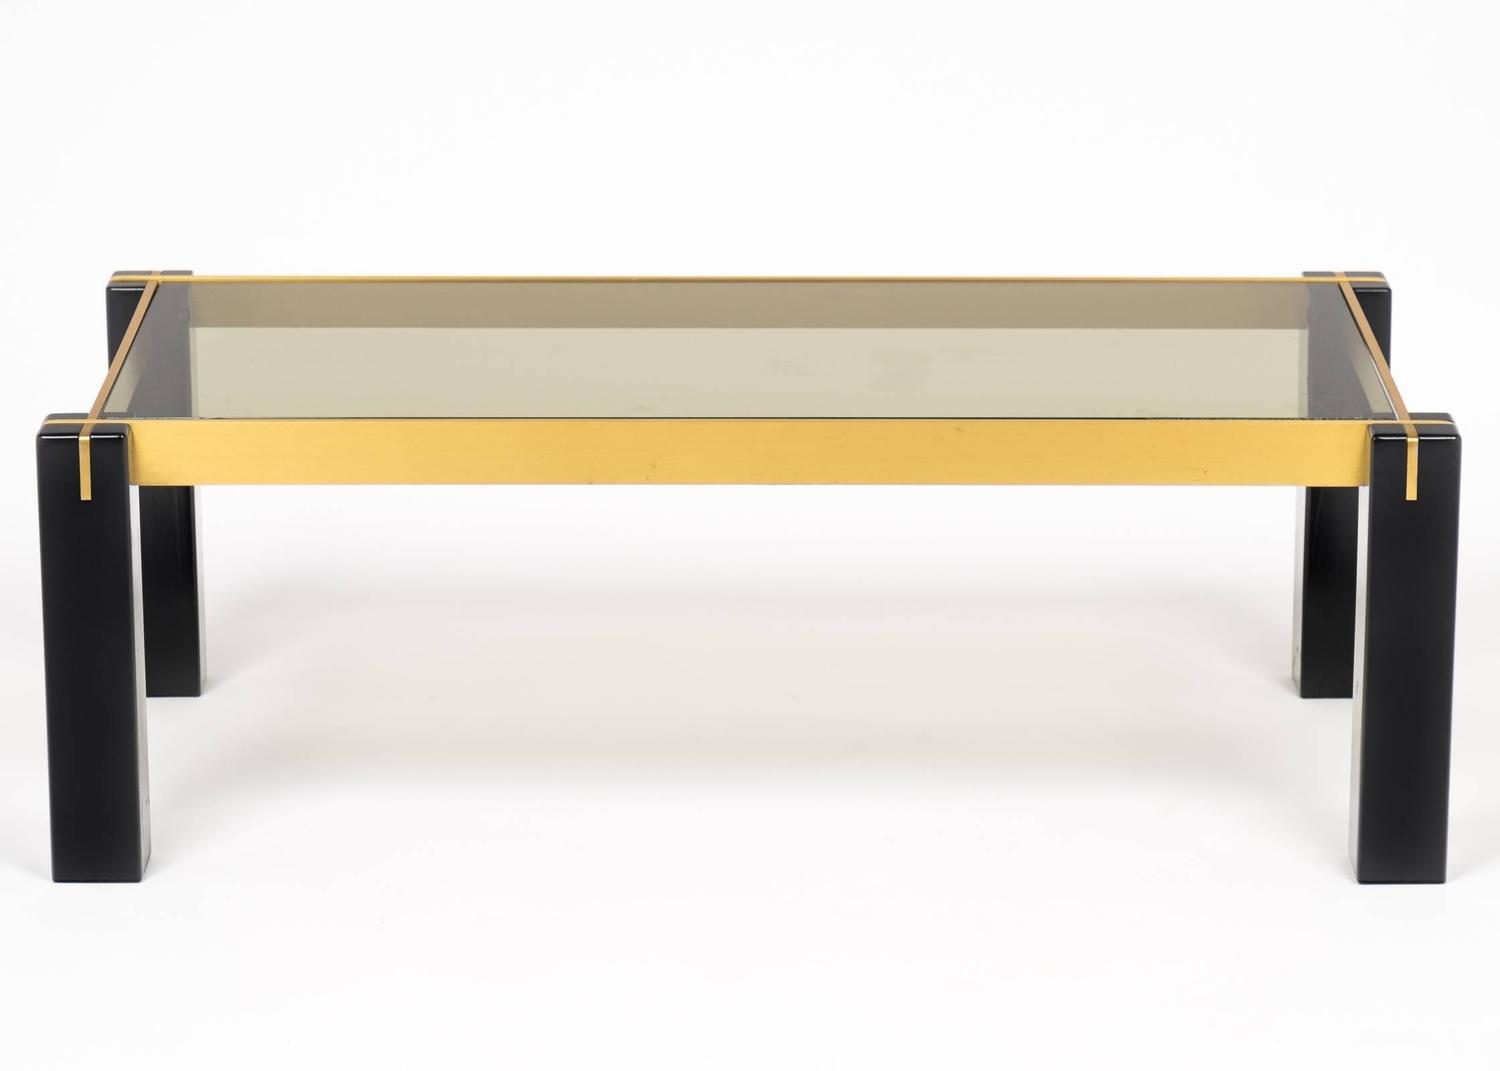 French Vintage Smoked Glass Top Coffee Table At 1stdibs